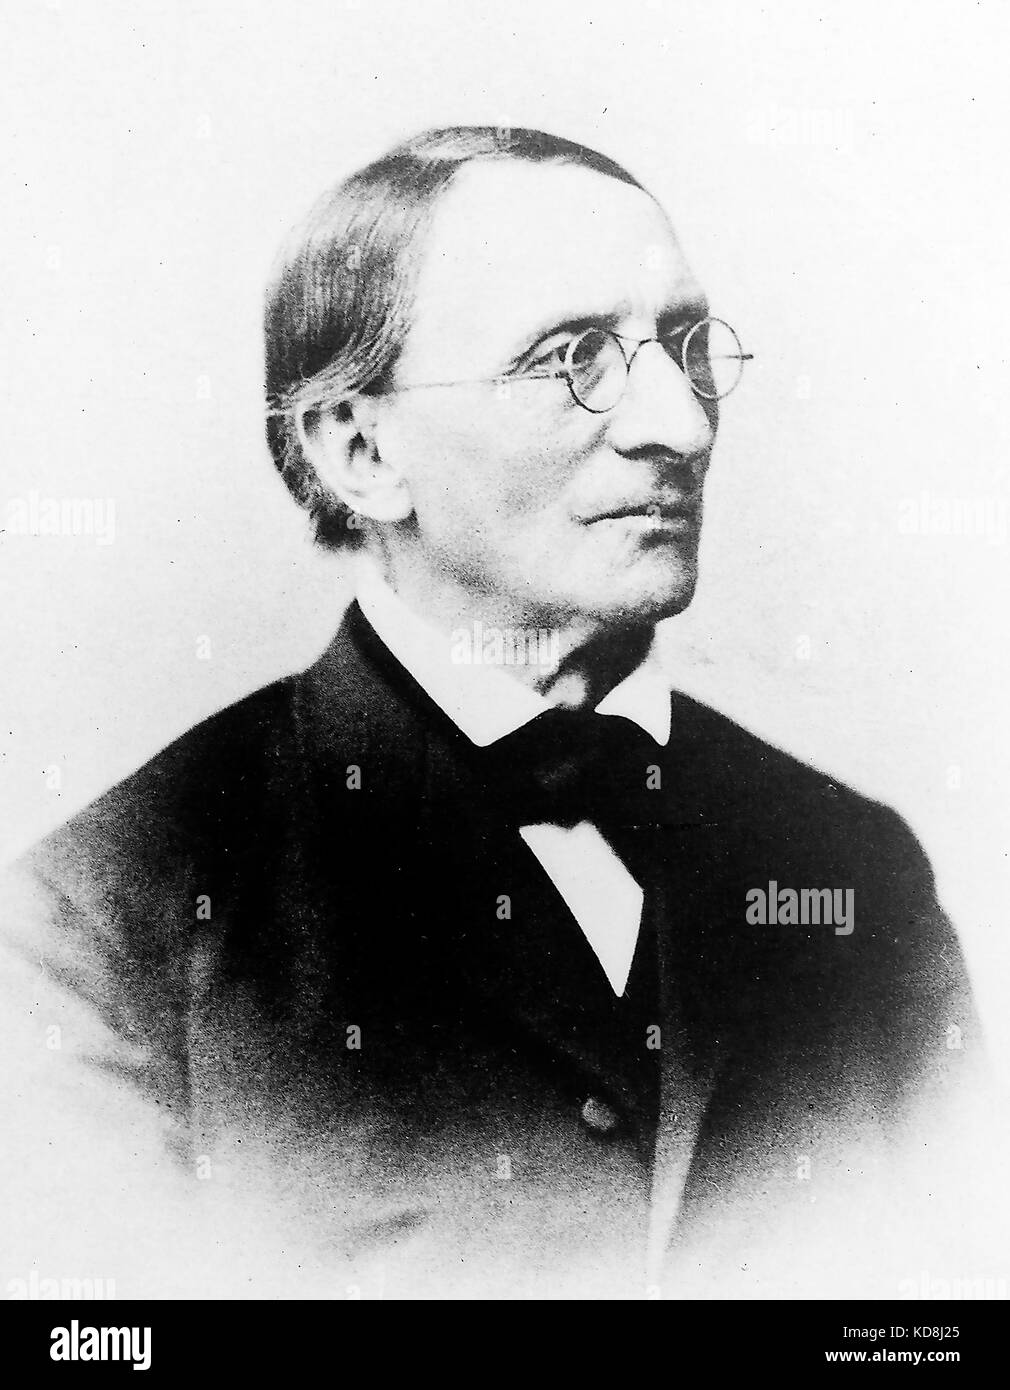 CARL LUDWIG (1816-1895) German physician and physiologist - Stock Image